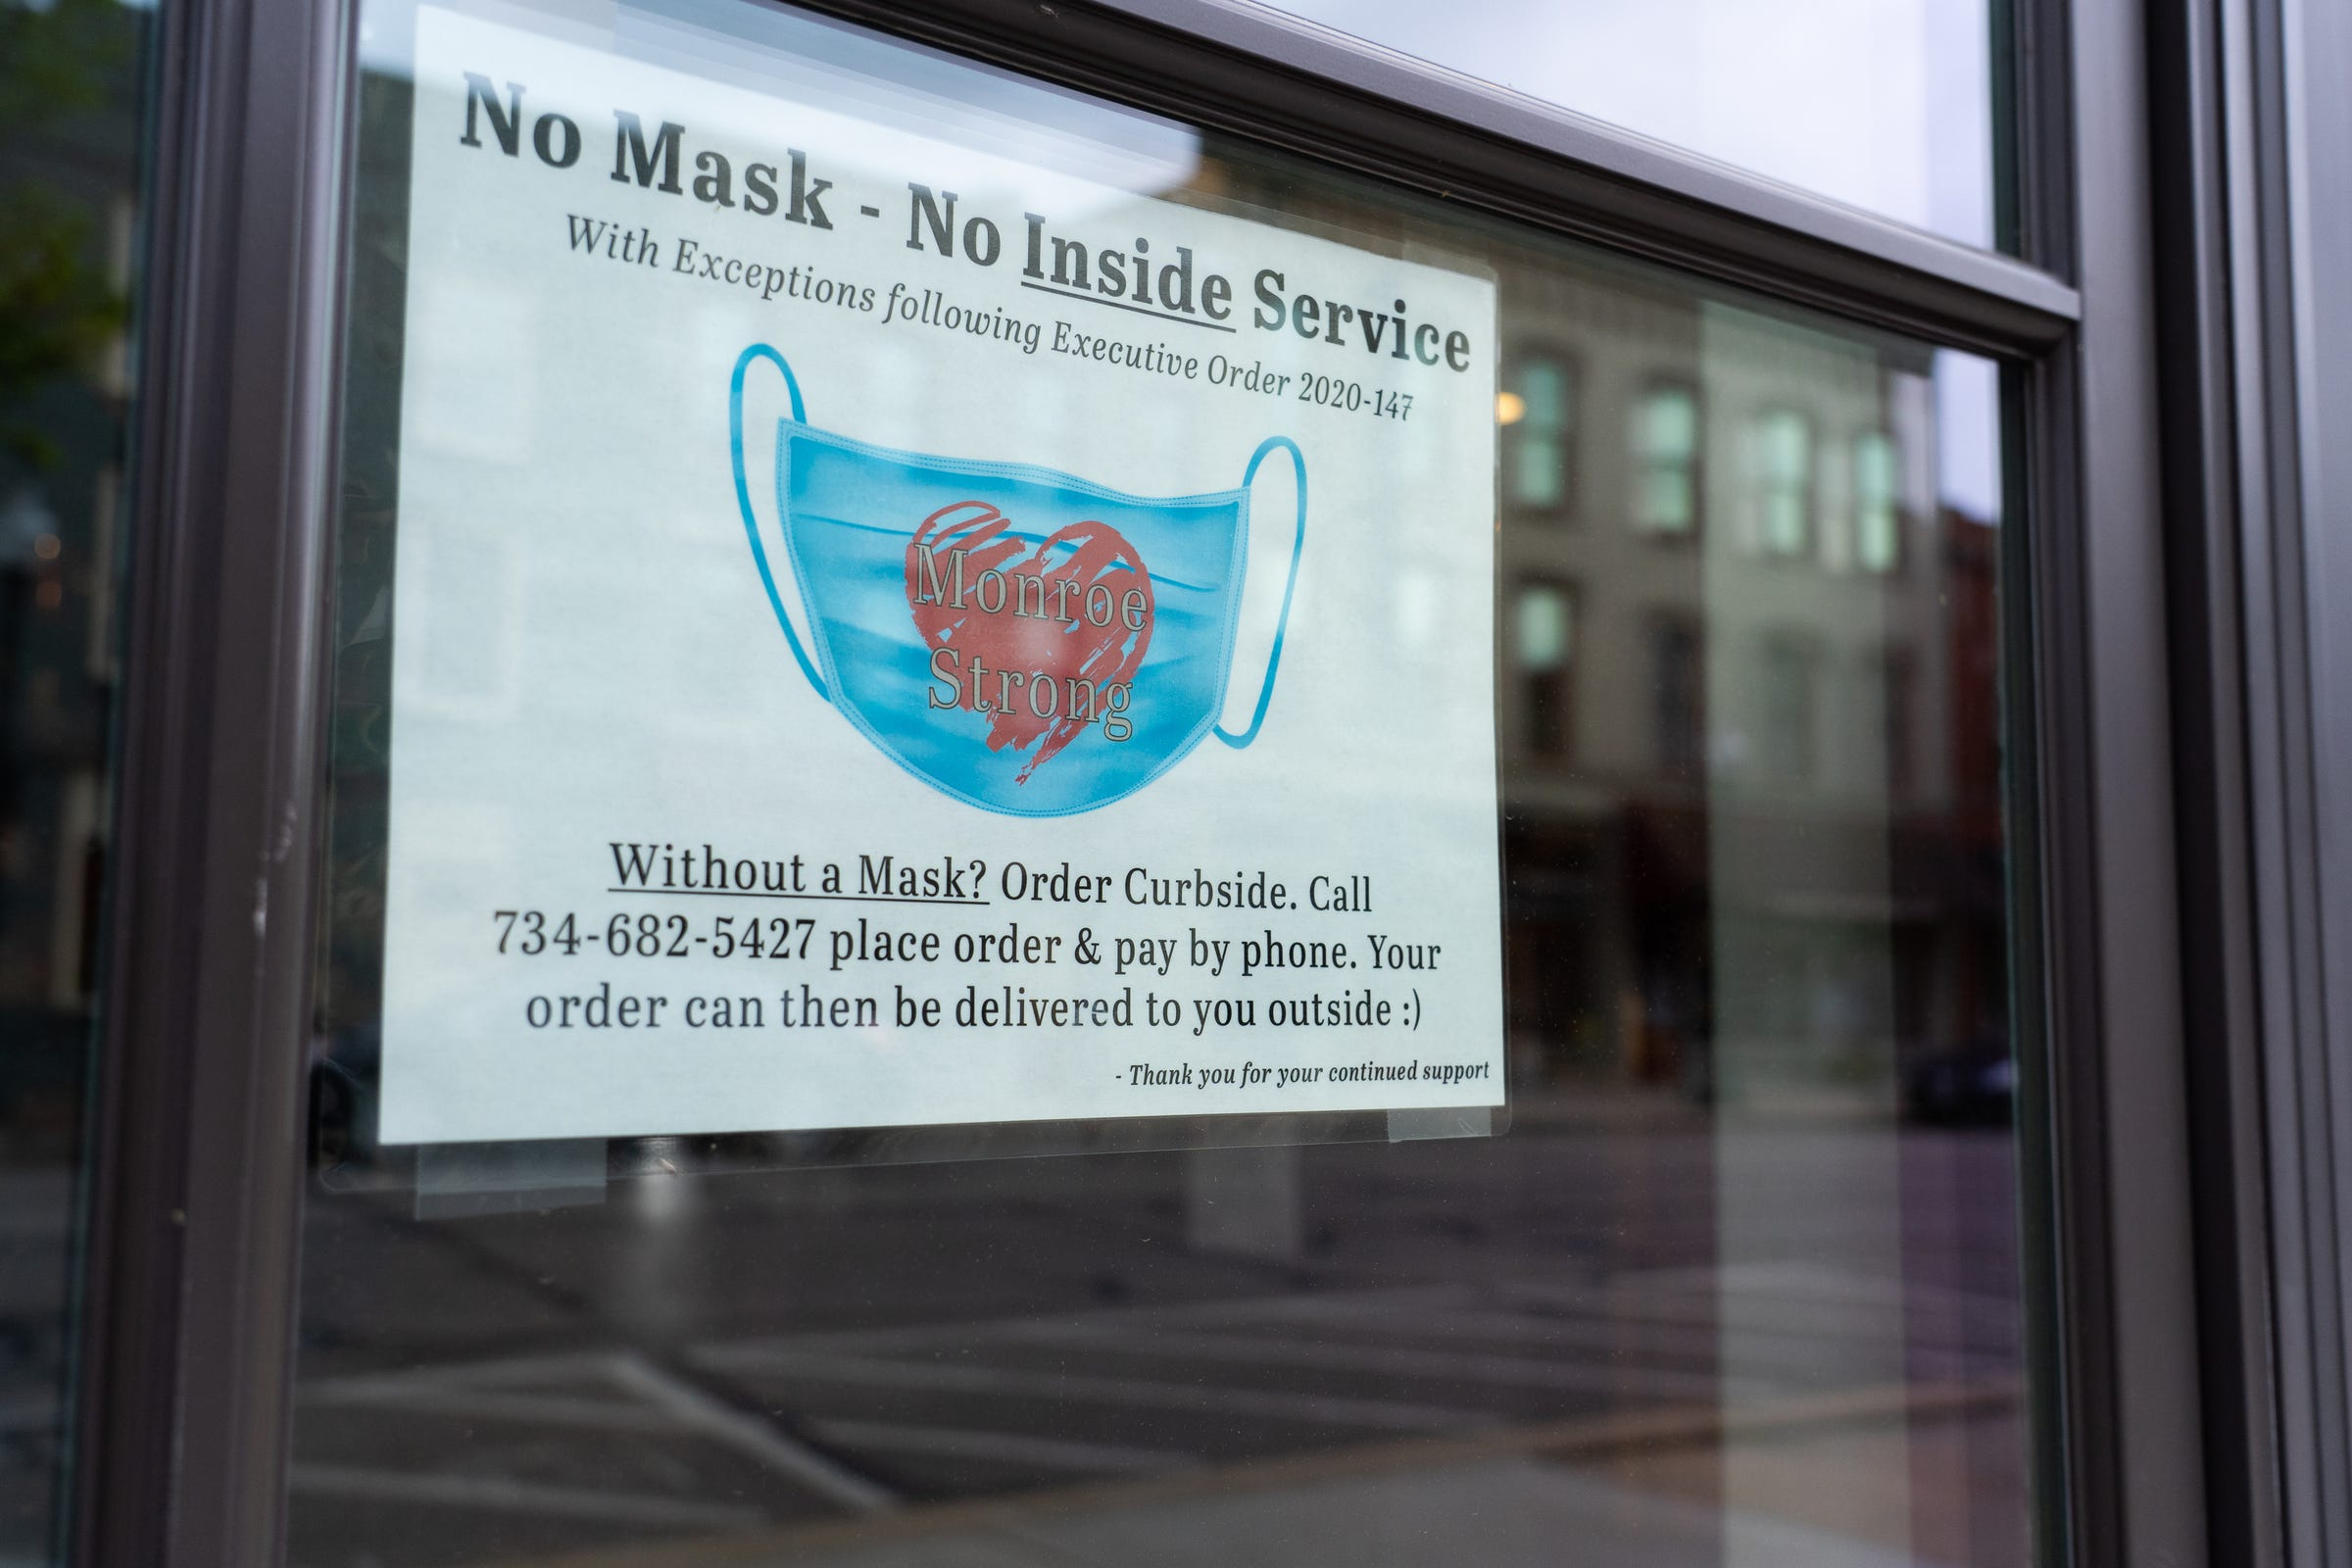 Face masks in Michigan: What you need to know about the new CDC guidelines